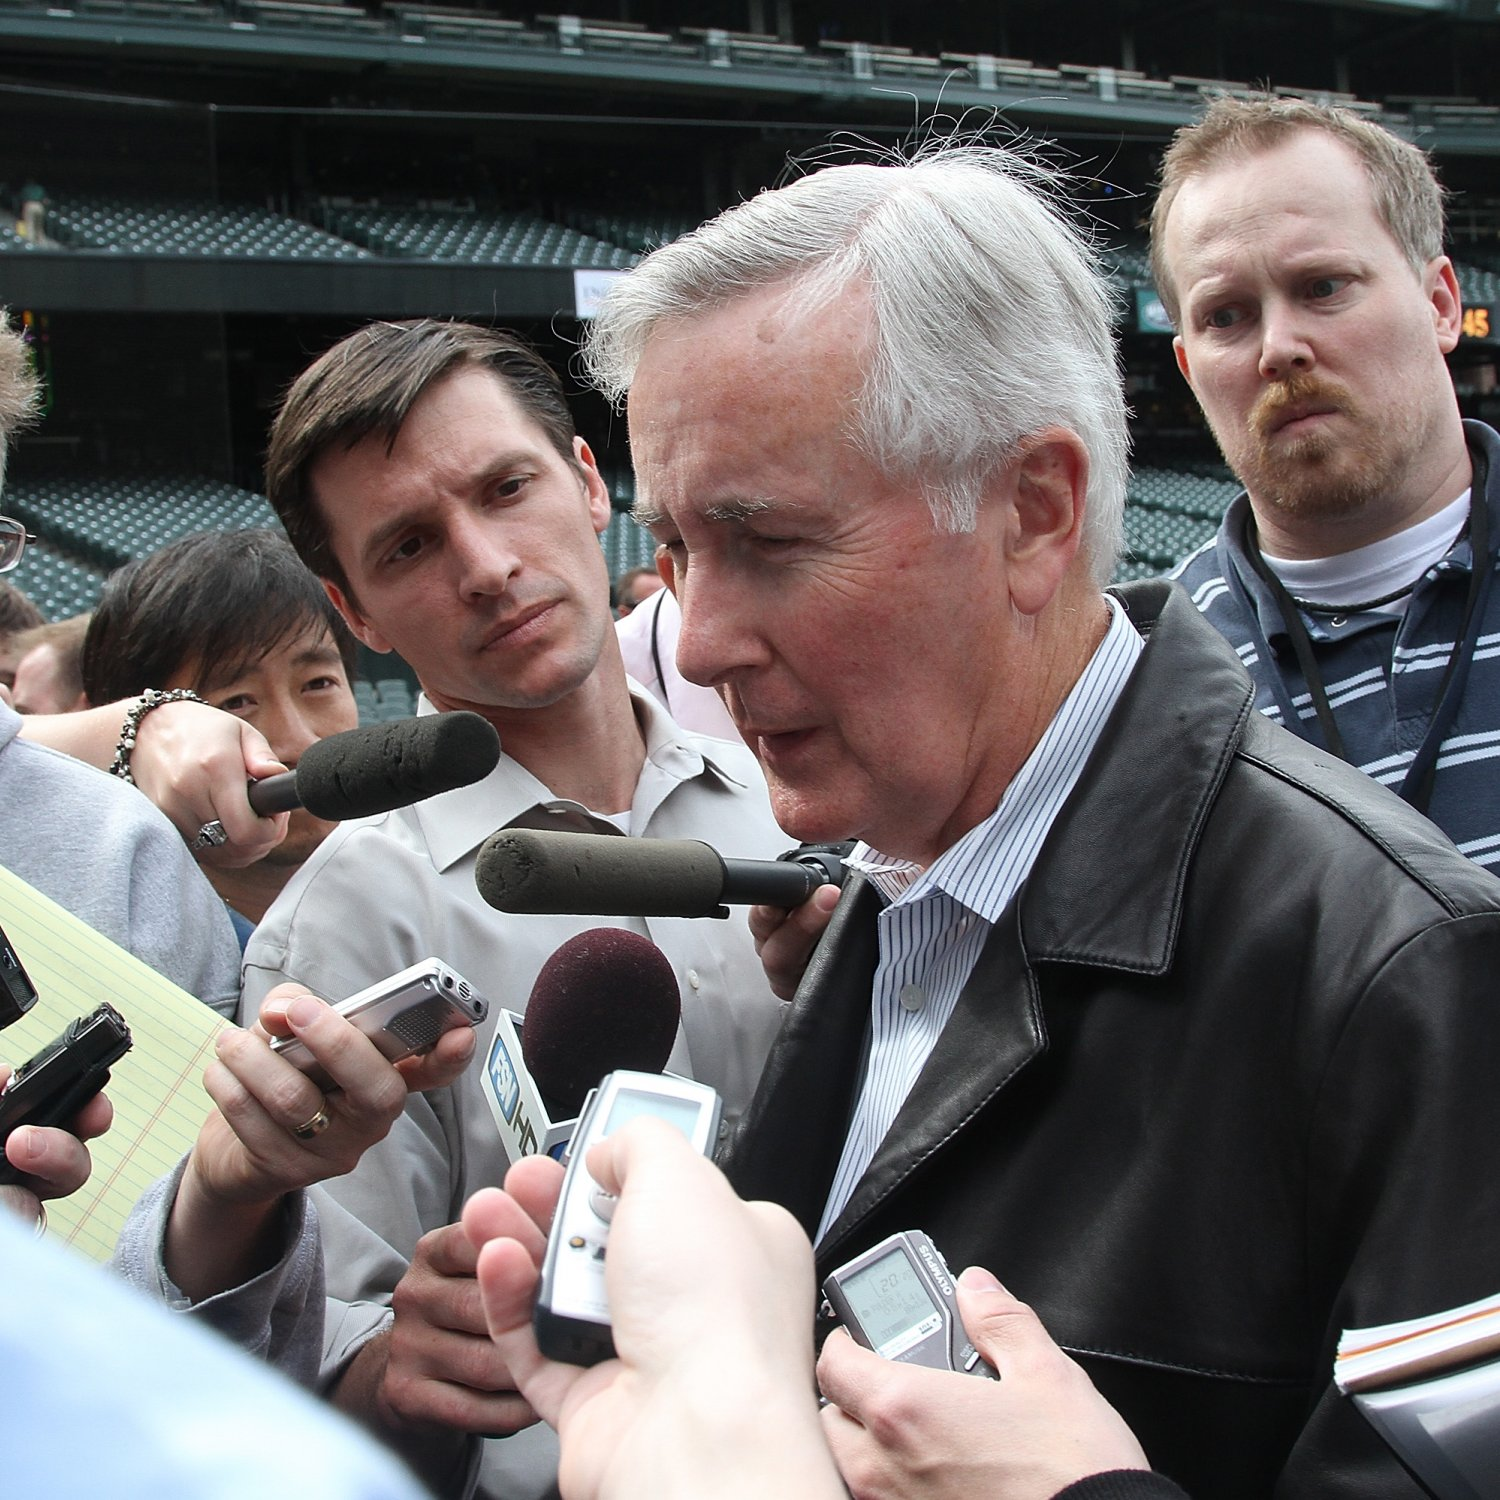 Lincoln Seattle: Howard Lincoln, Mariners Owner, Retires: Latest Comments